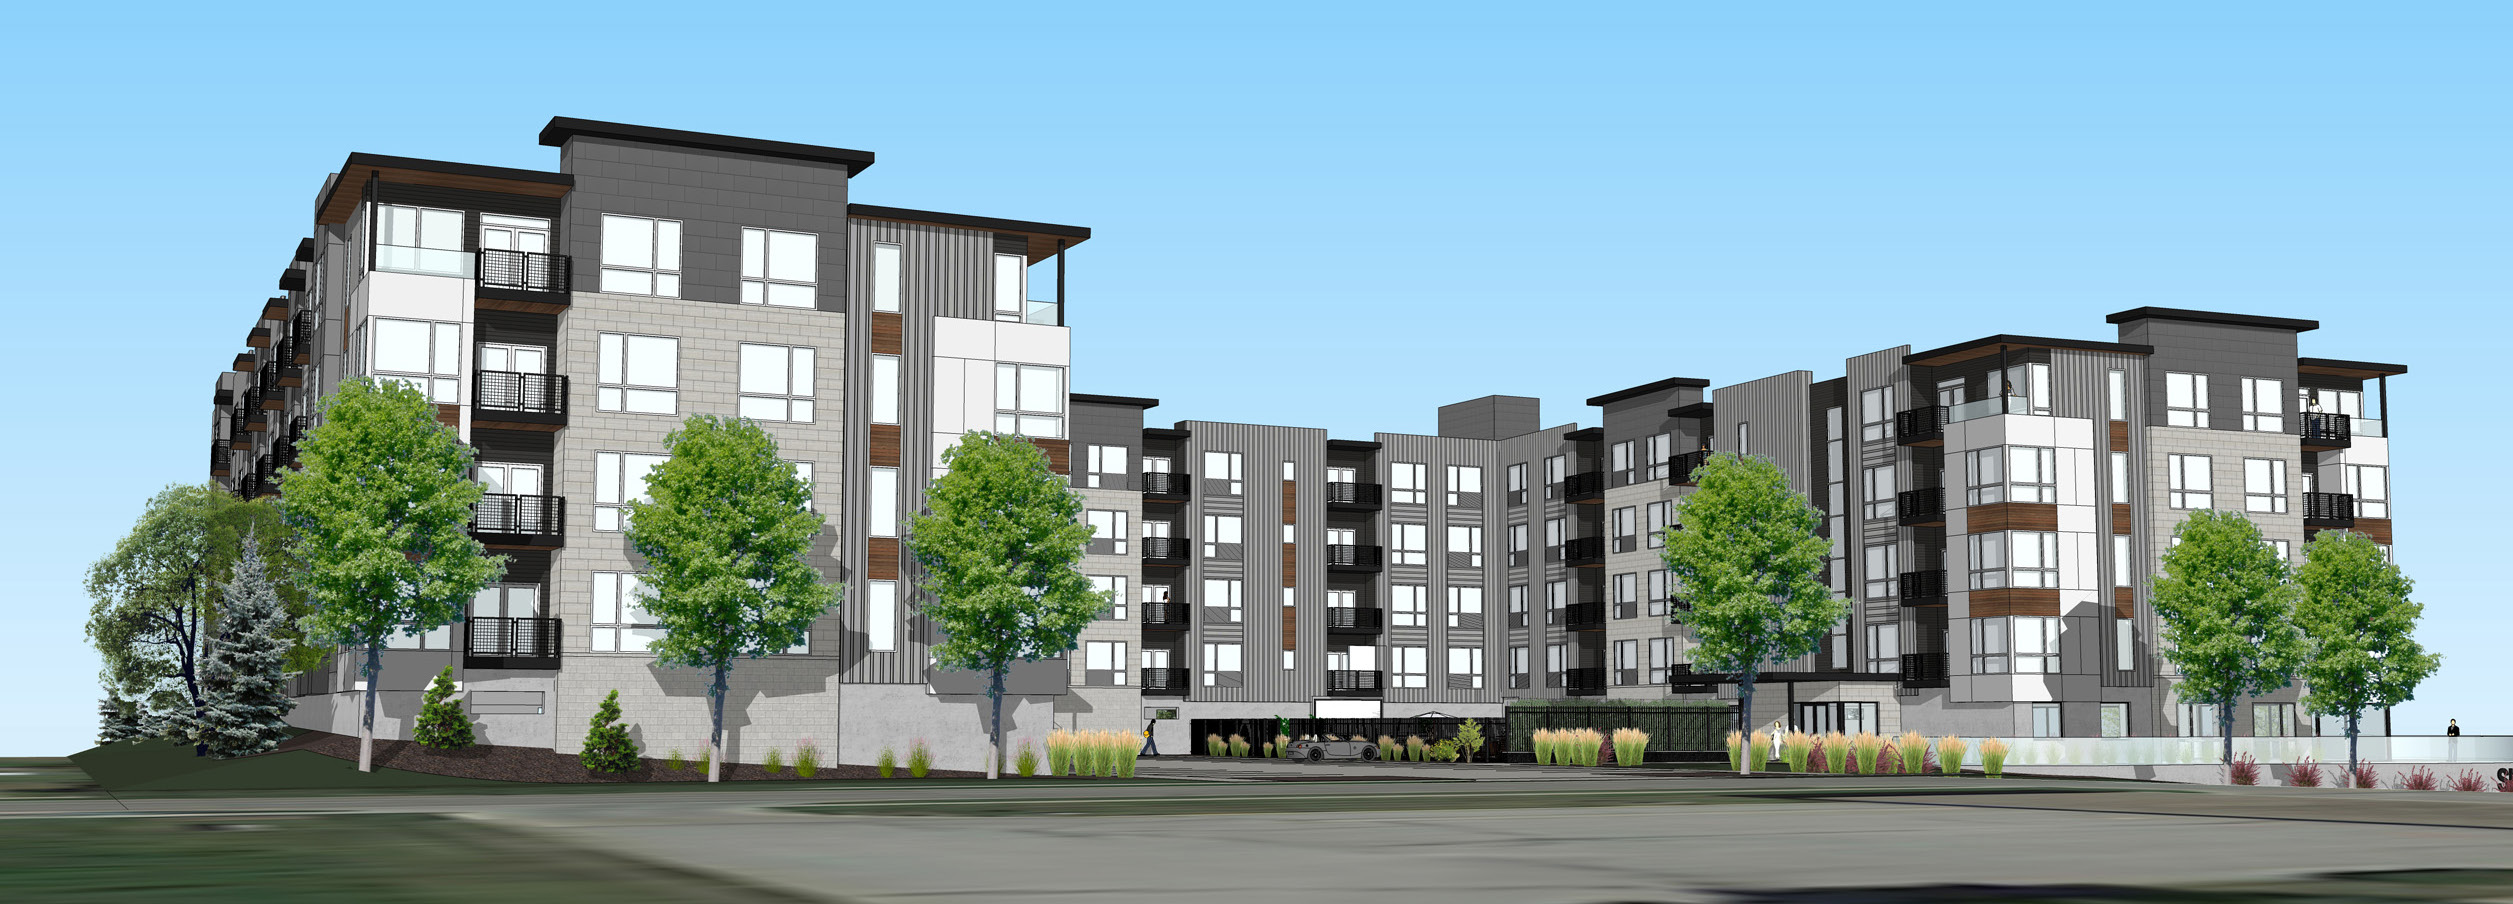 Rendering of new apartments at Cotner site in Lincoln, NE to be developed by CIP